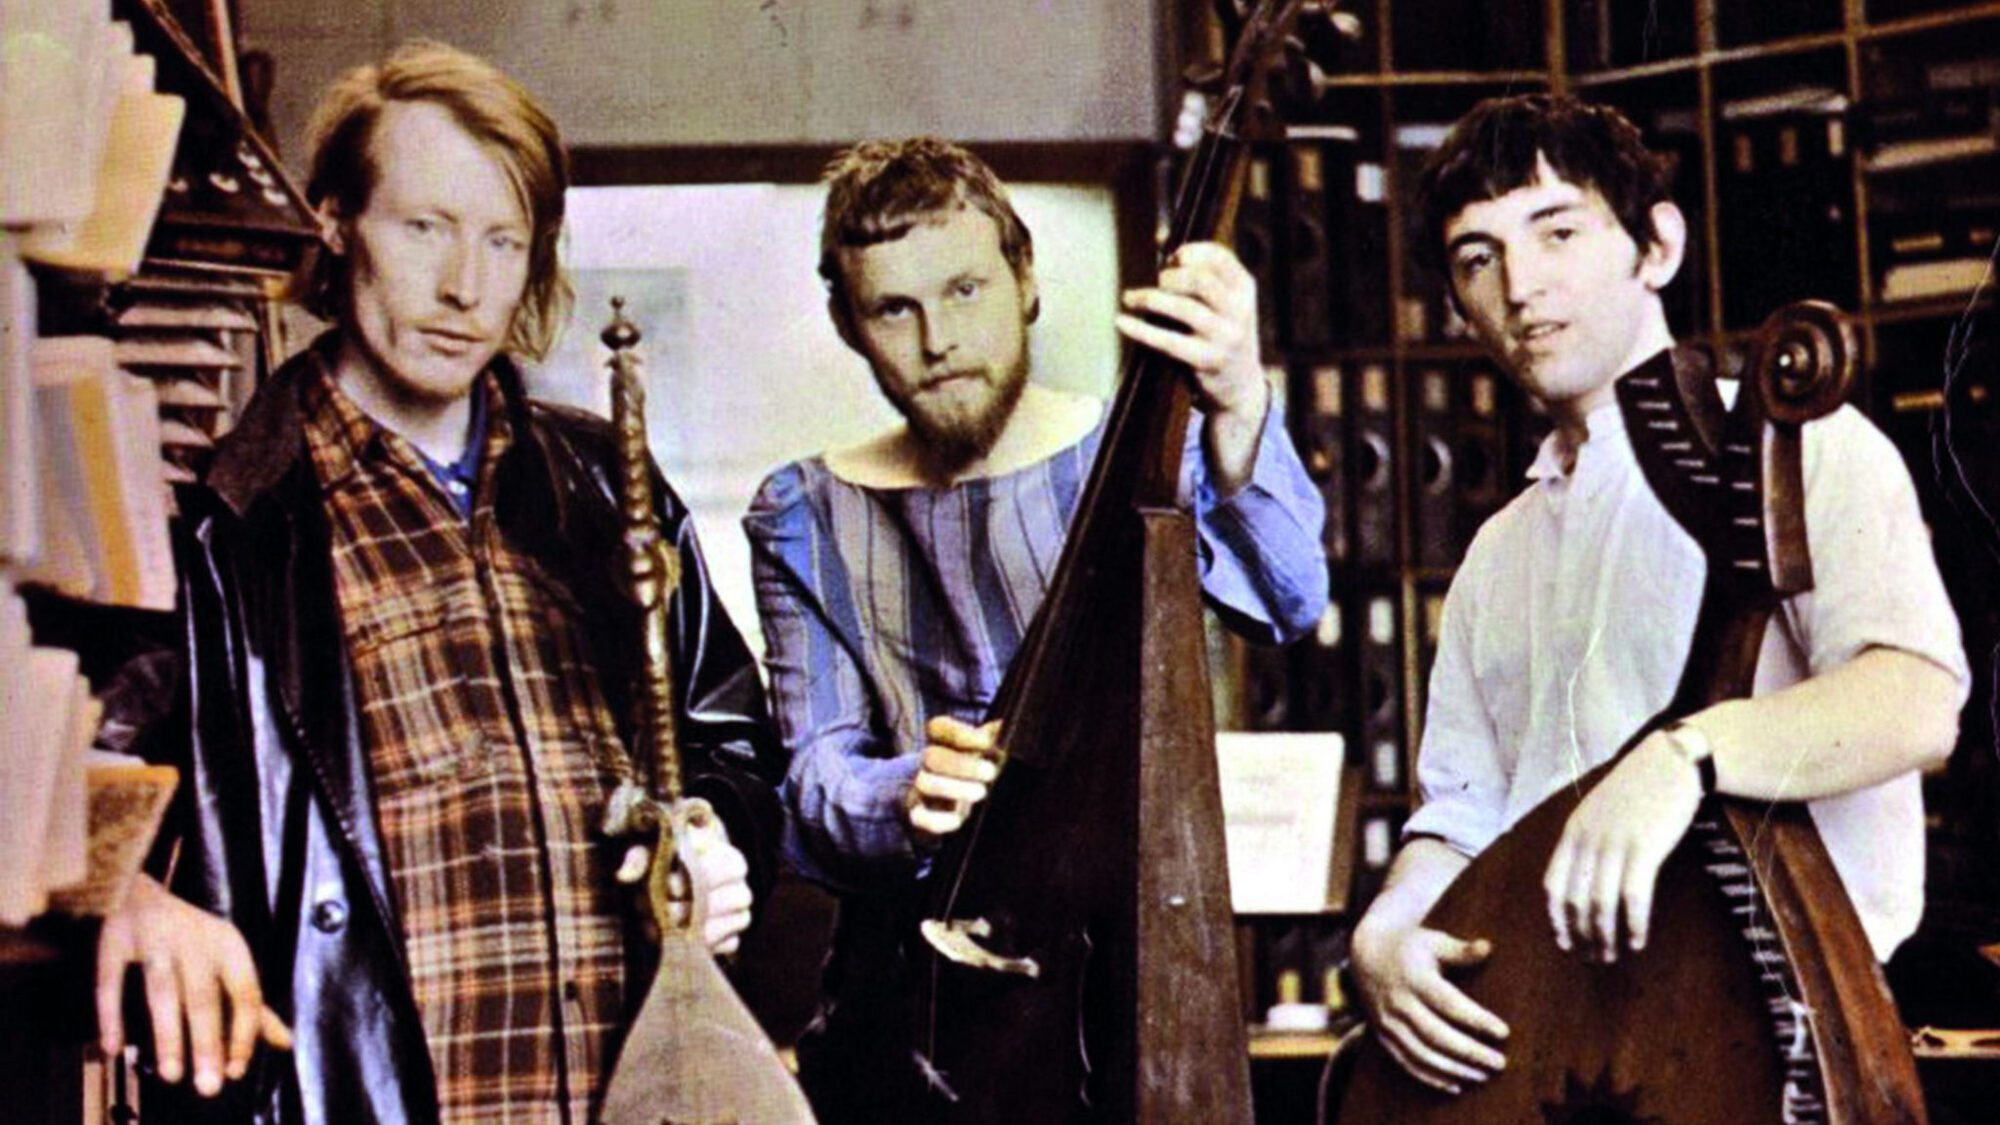 Photo of the Incredible String Band